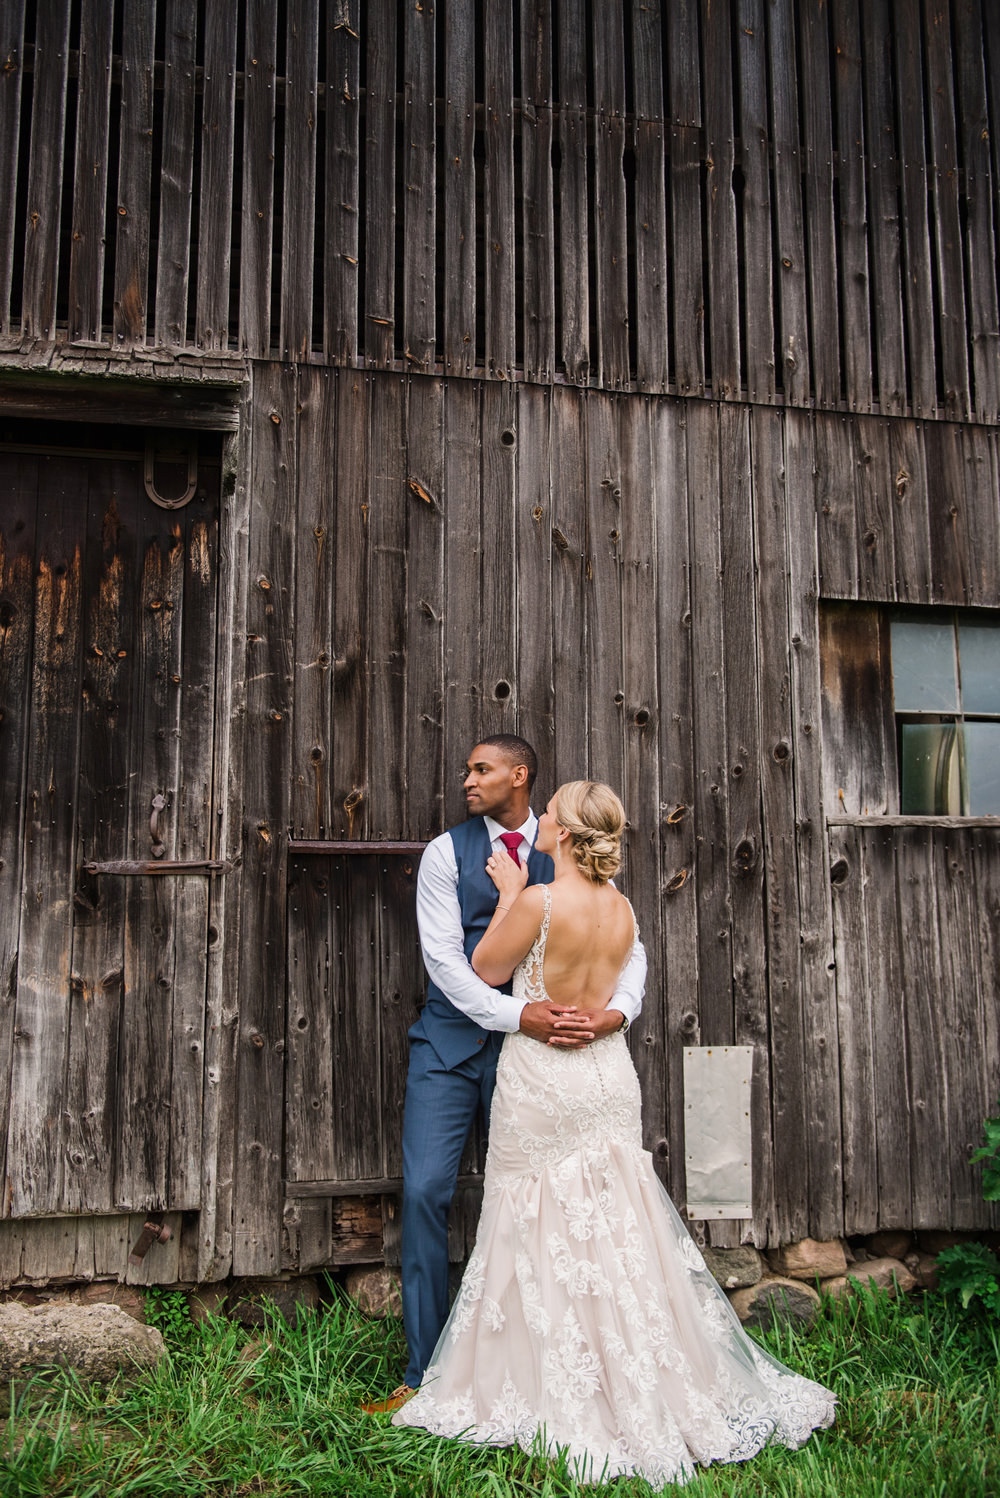 Cobblestone_Wedding_Barn_Rochester_Wedding_JILL_STUDIO_Rochester_NY_Photographer_DSC_7873.jpg